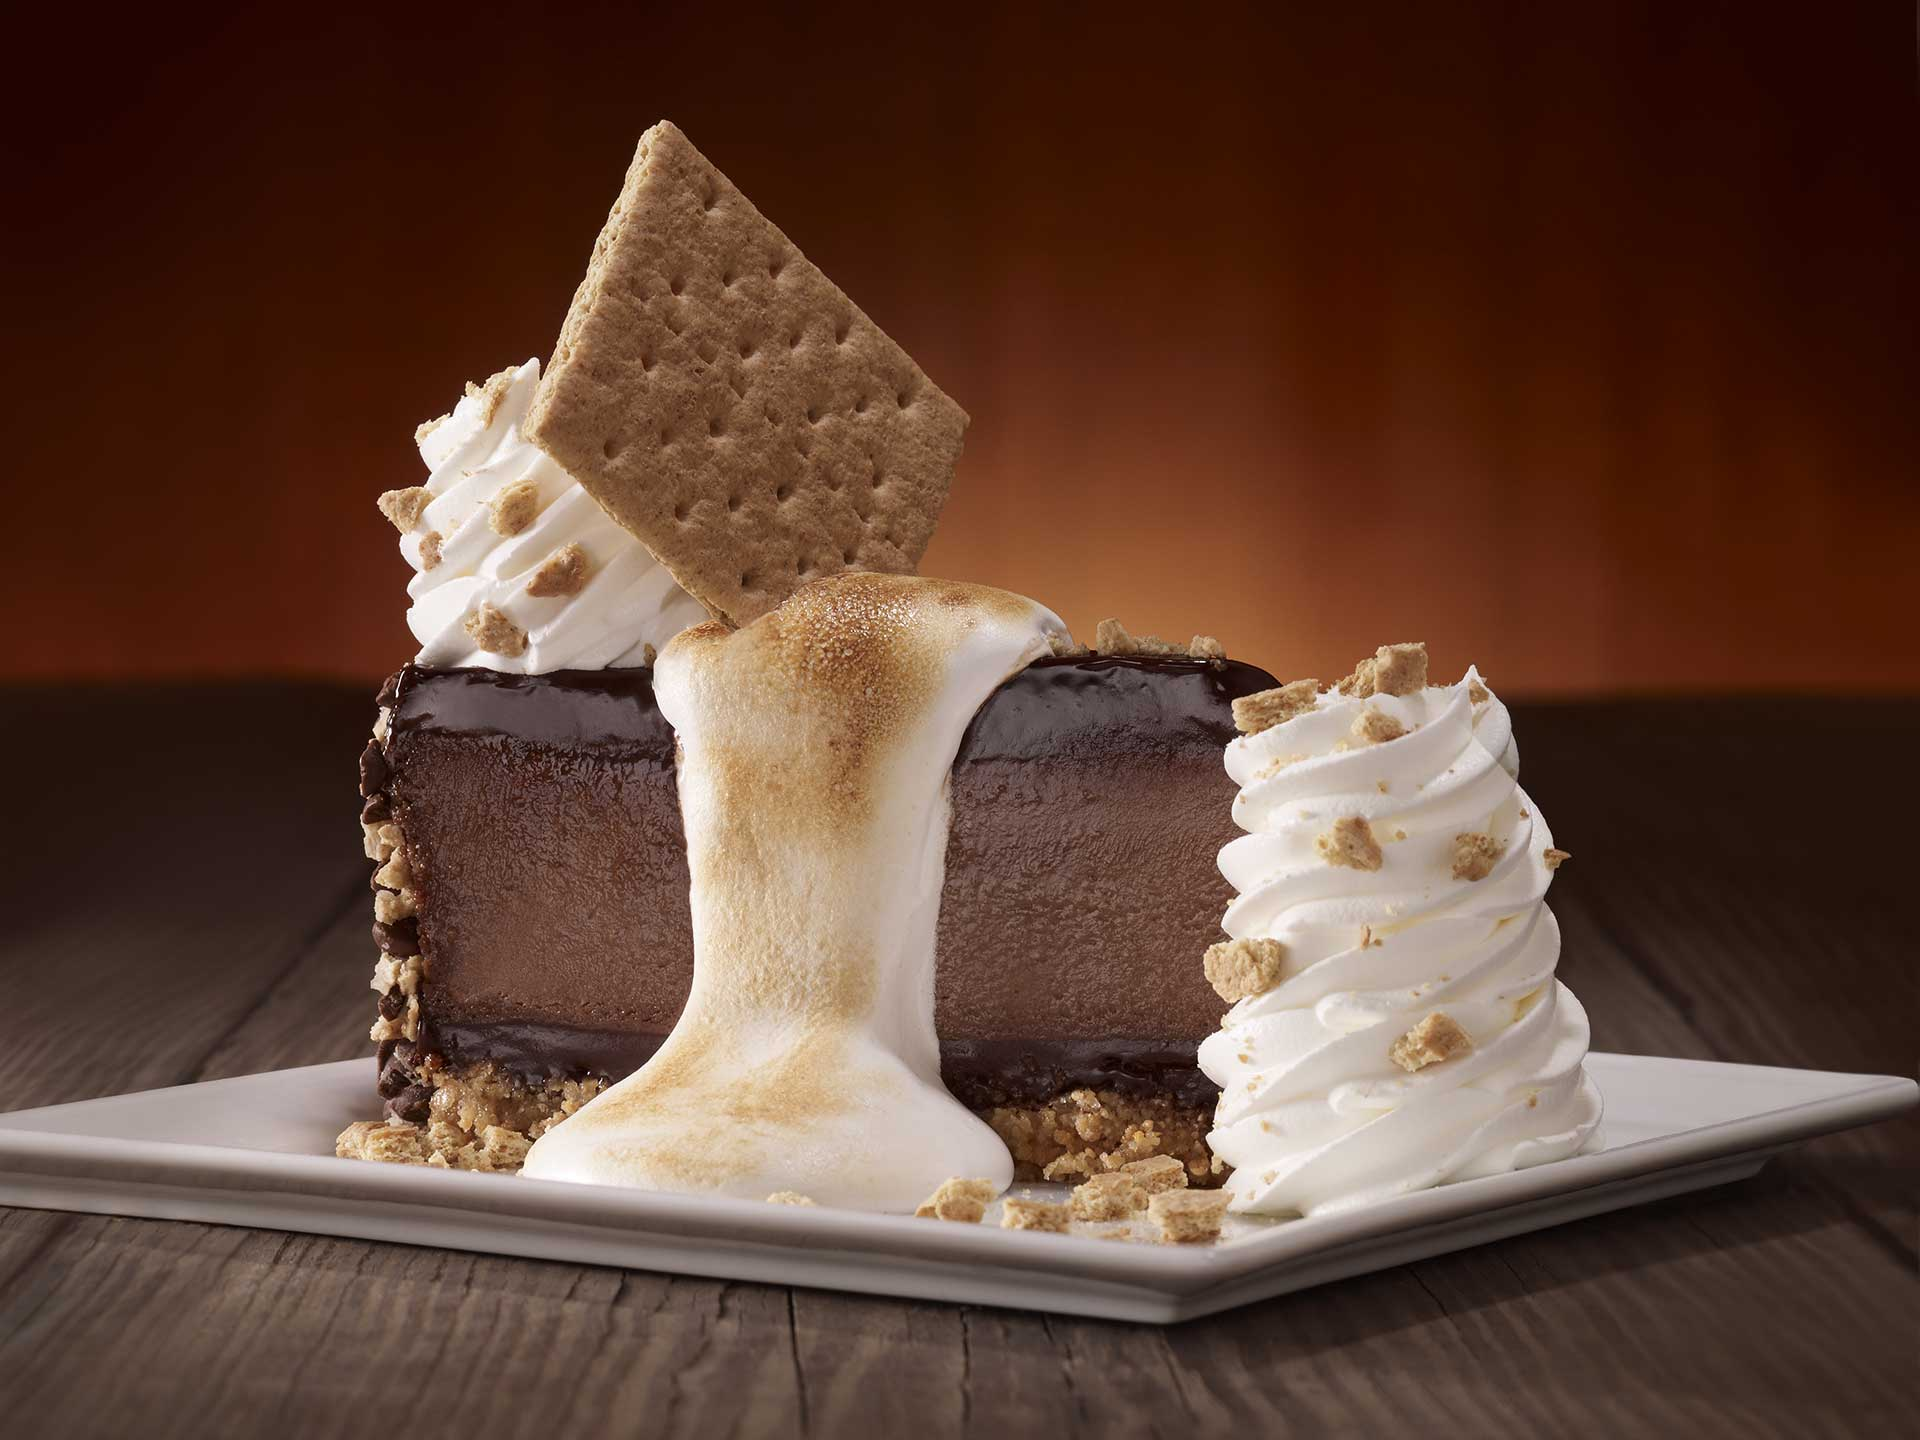 Cheesecake Mobile Payments: CakePay Is Eating the World